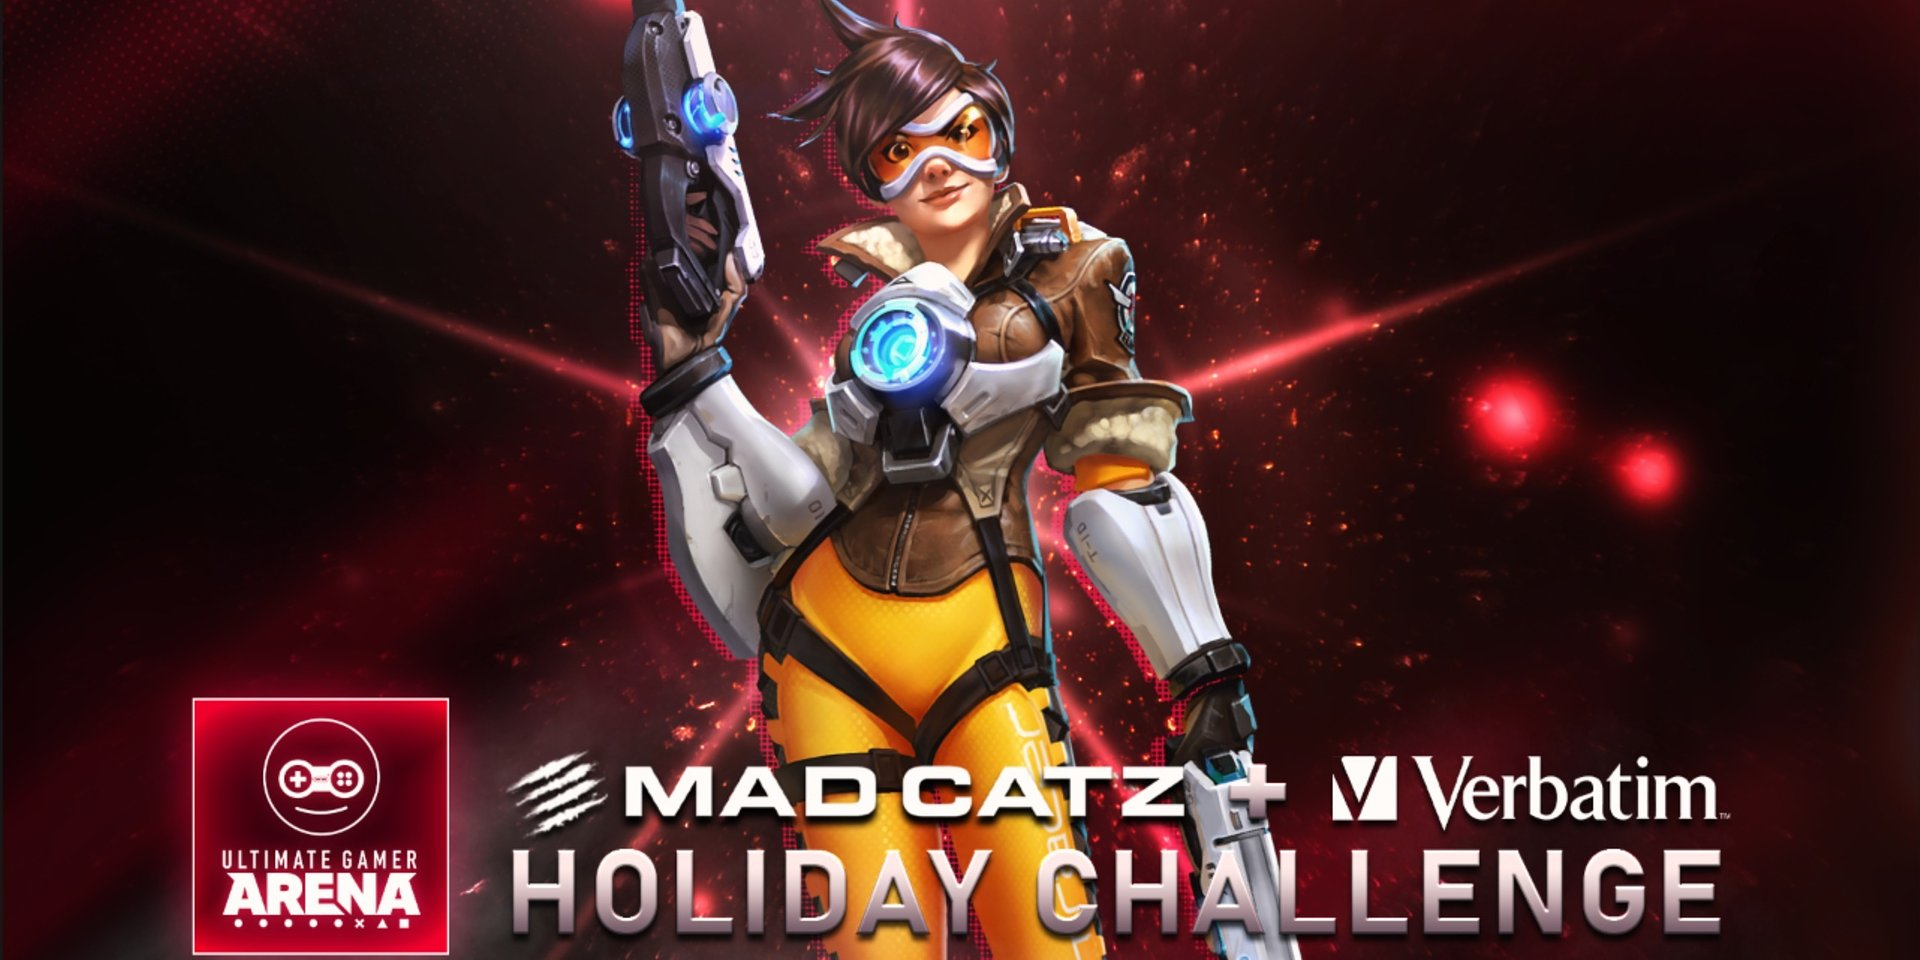 Ultimate Gamer Partners With Verbatim/Mad Catz to Bring Cash Prizes to Gaming Community